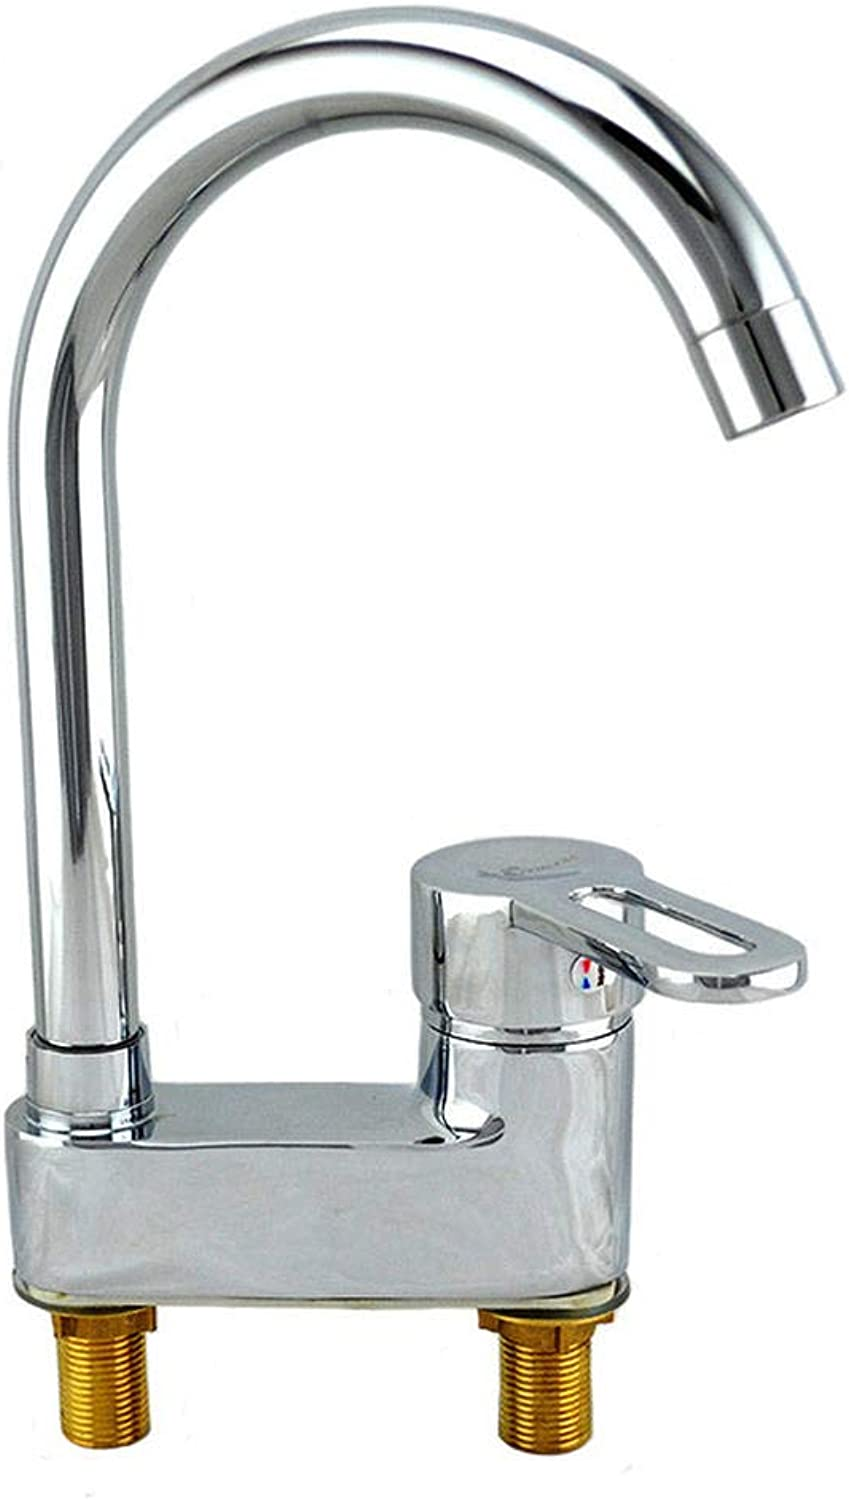 Copper Single Double-Headed Copper Double-Headed Copper Bench, Basin, Cold and hot Water Mixing Faucet